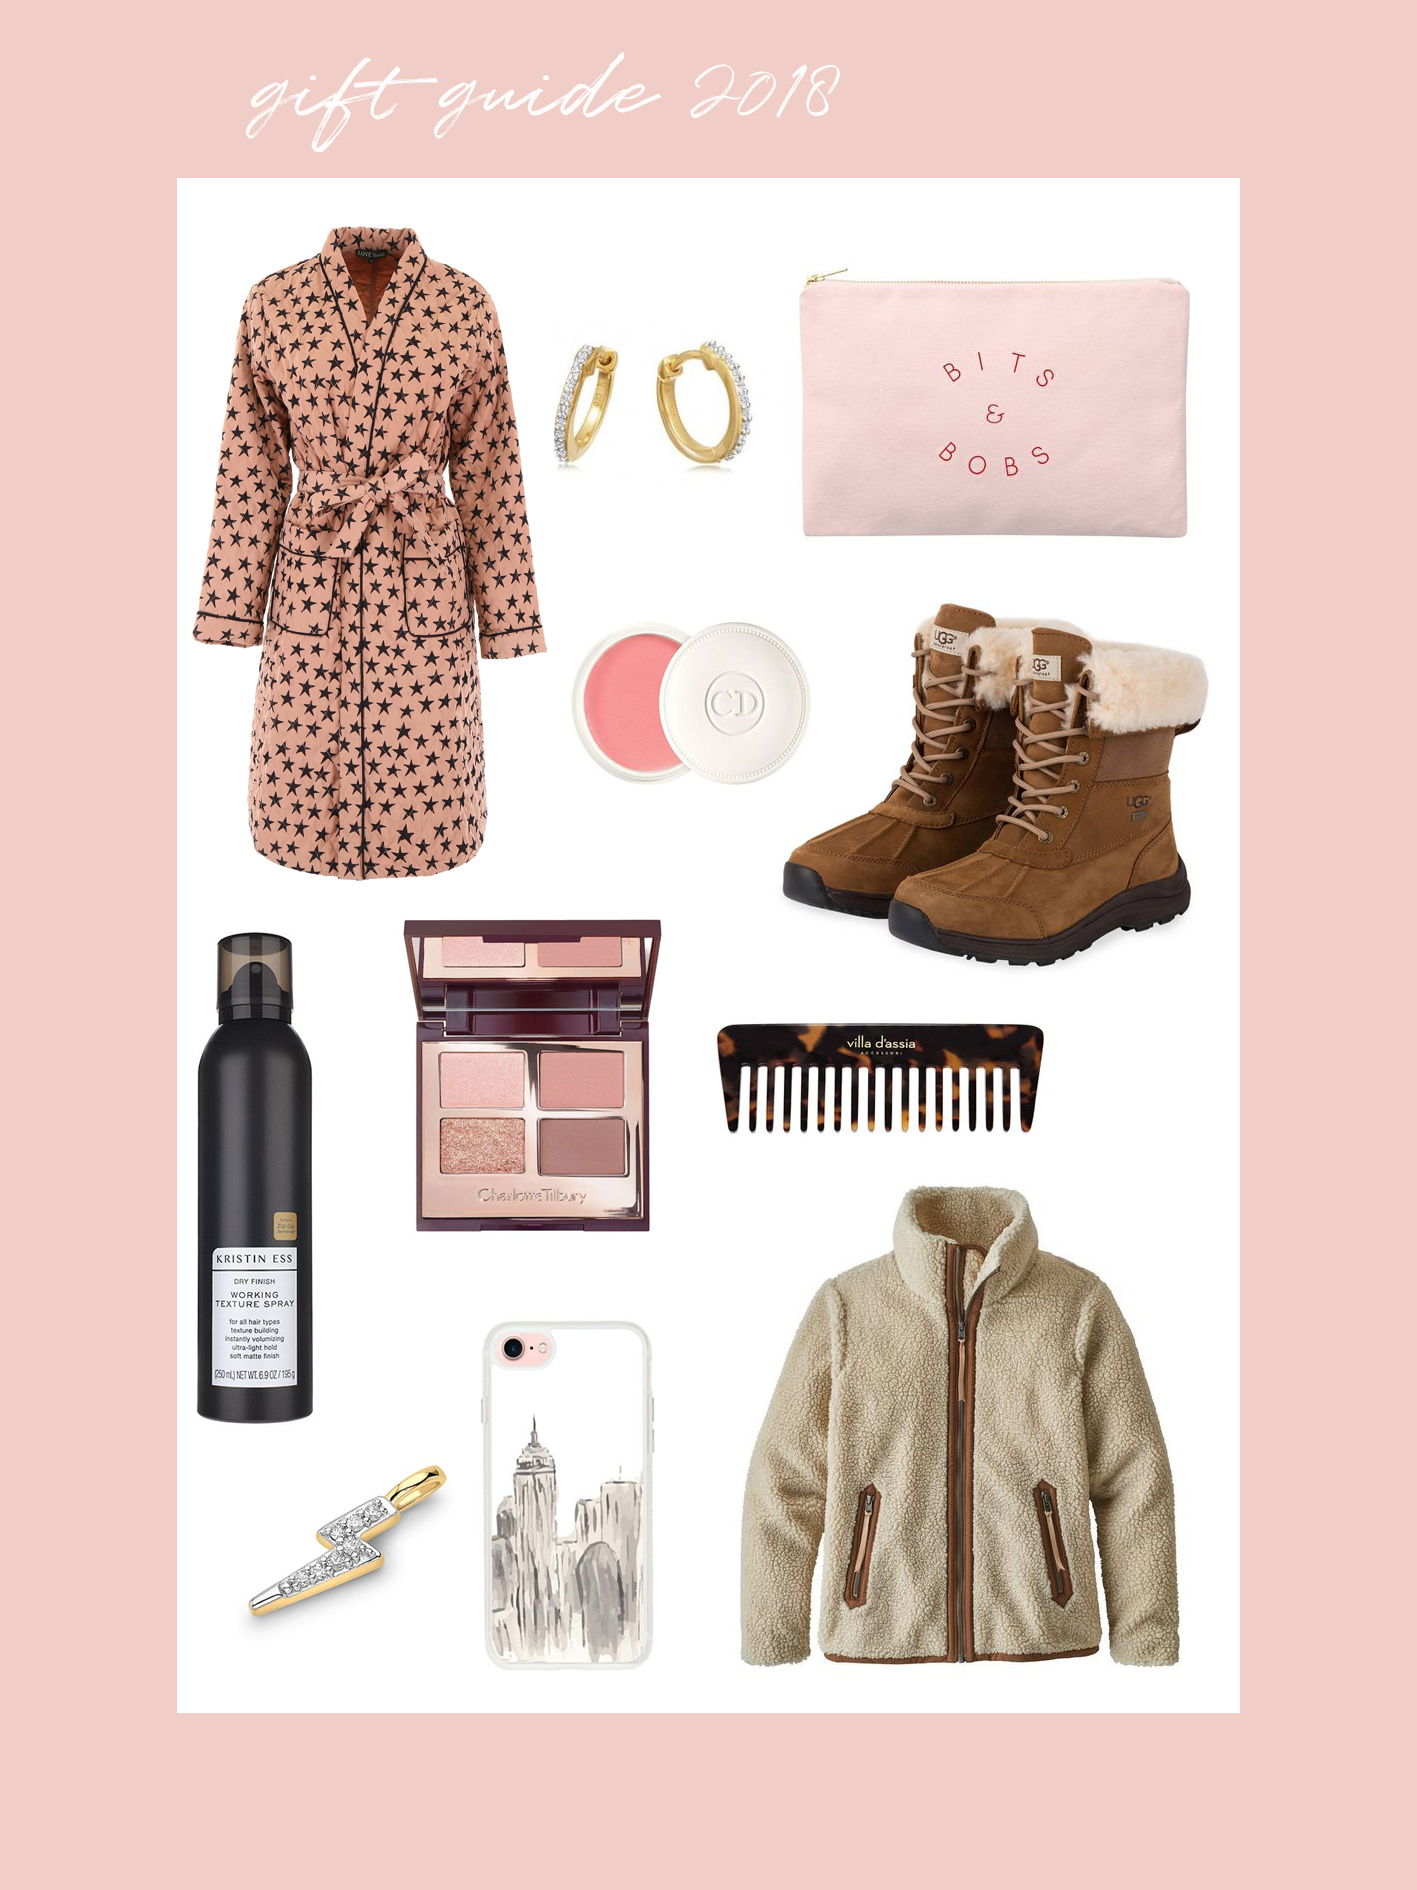 IEB gift guide 2018 - style